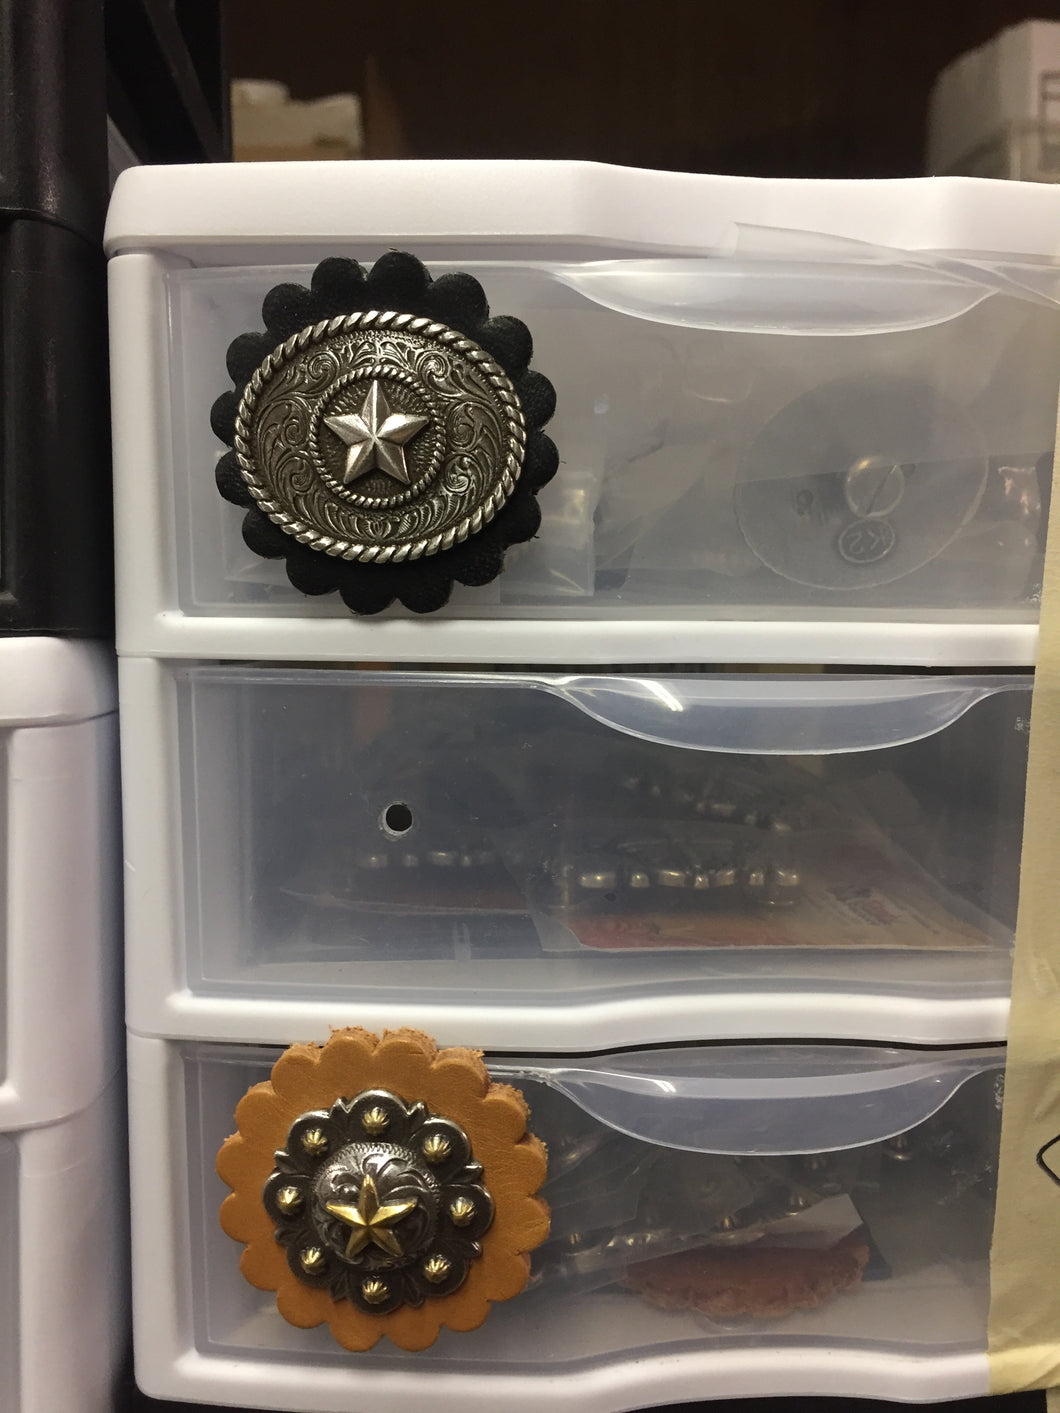 Anchor Brand - T.M. - Buckles and Conchos - Pic 34 Drawer 1